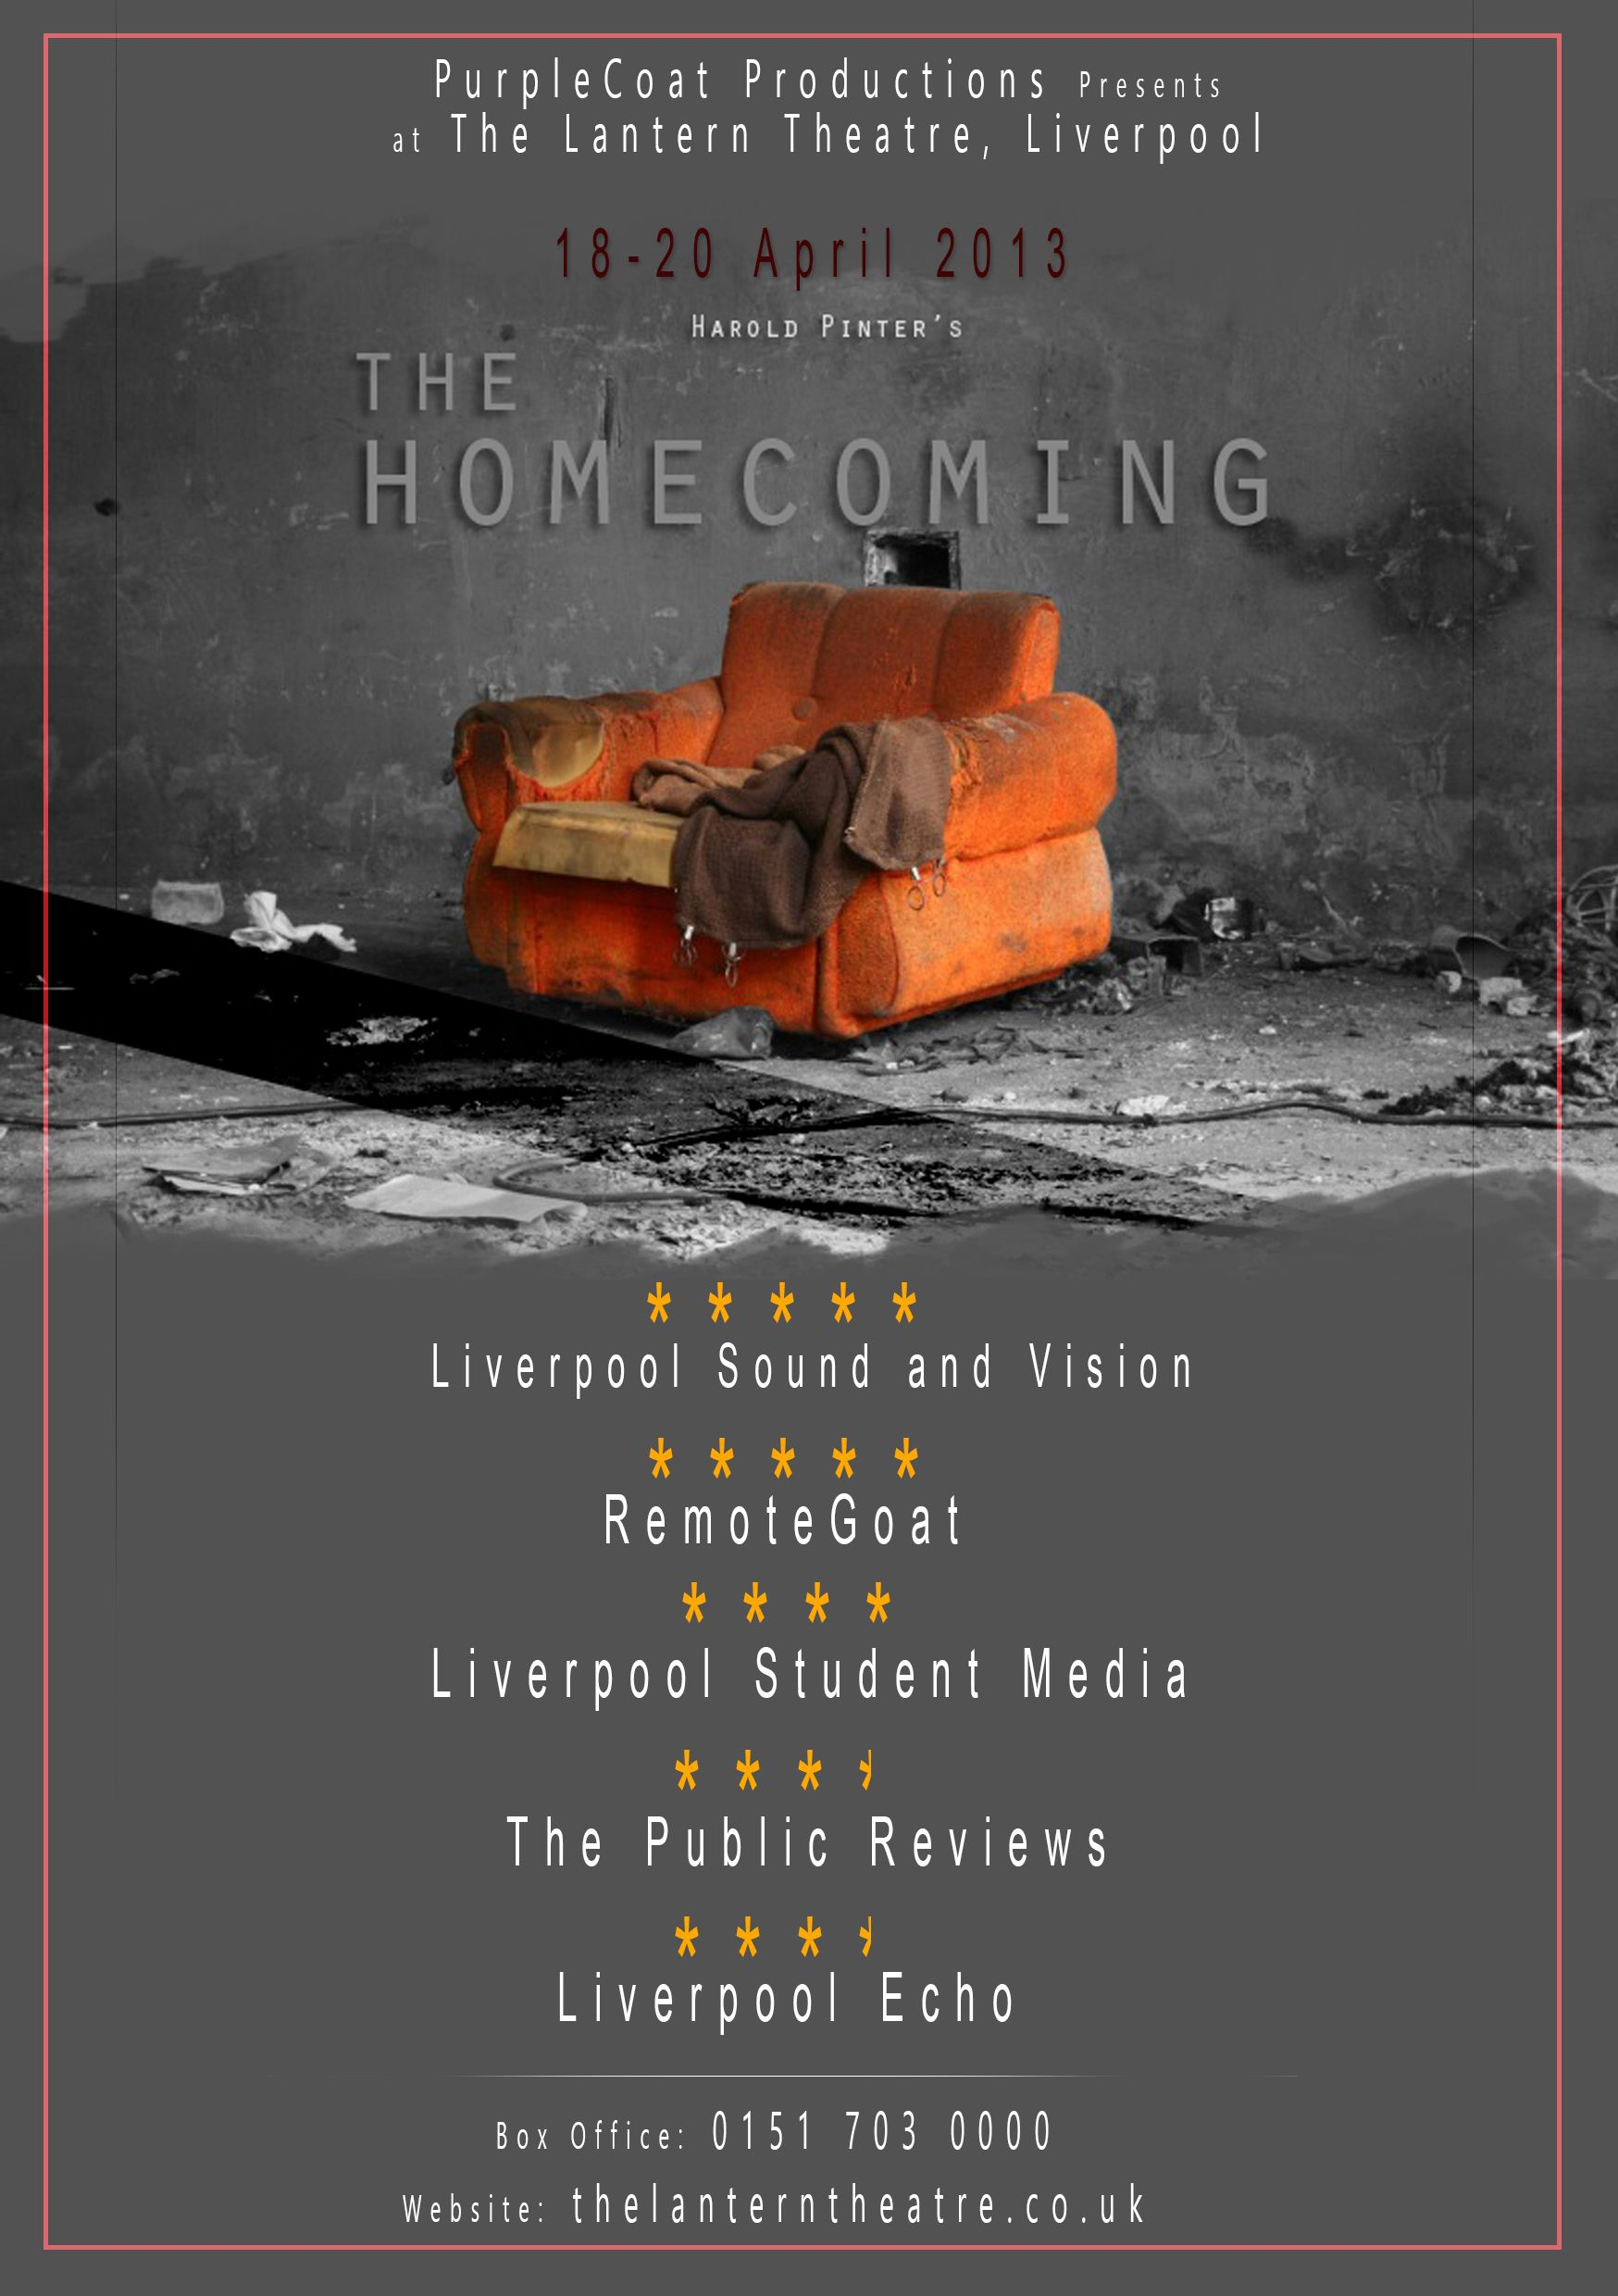 The Homecoming Flyer Graphic Design Inspiration Design Inspiration Homecoming